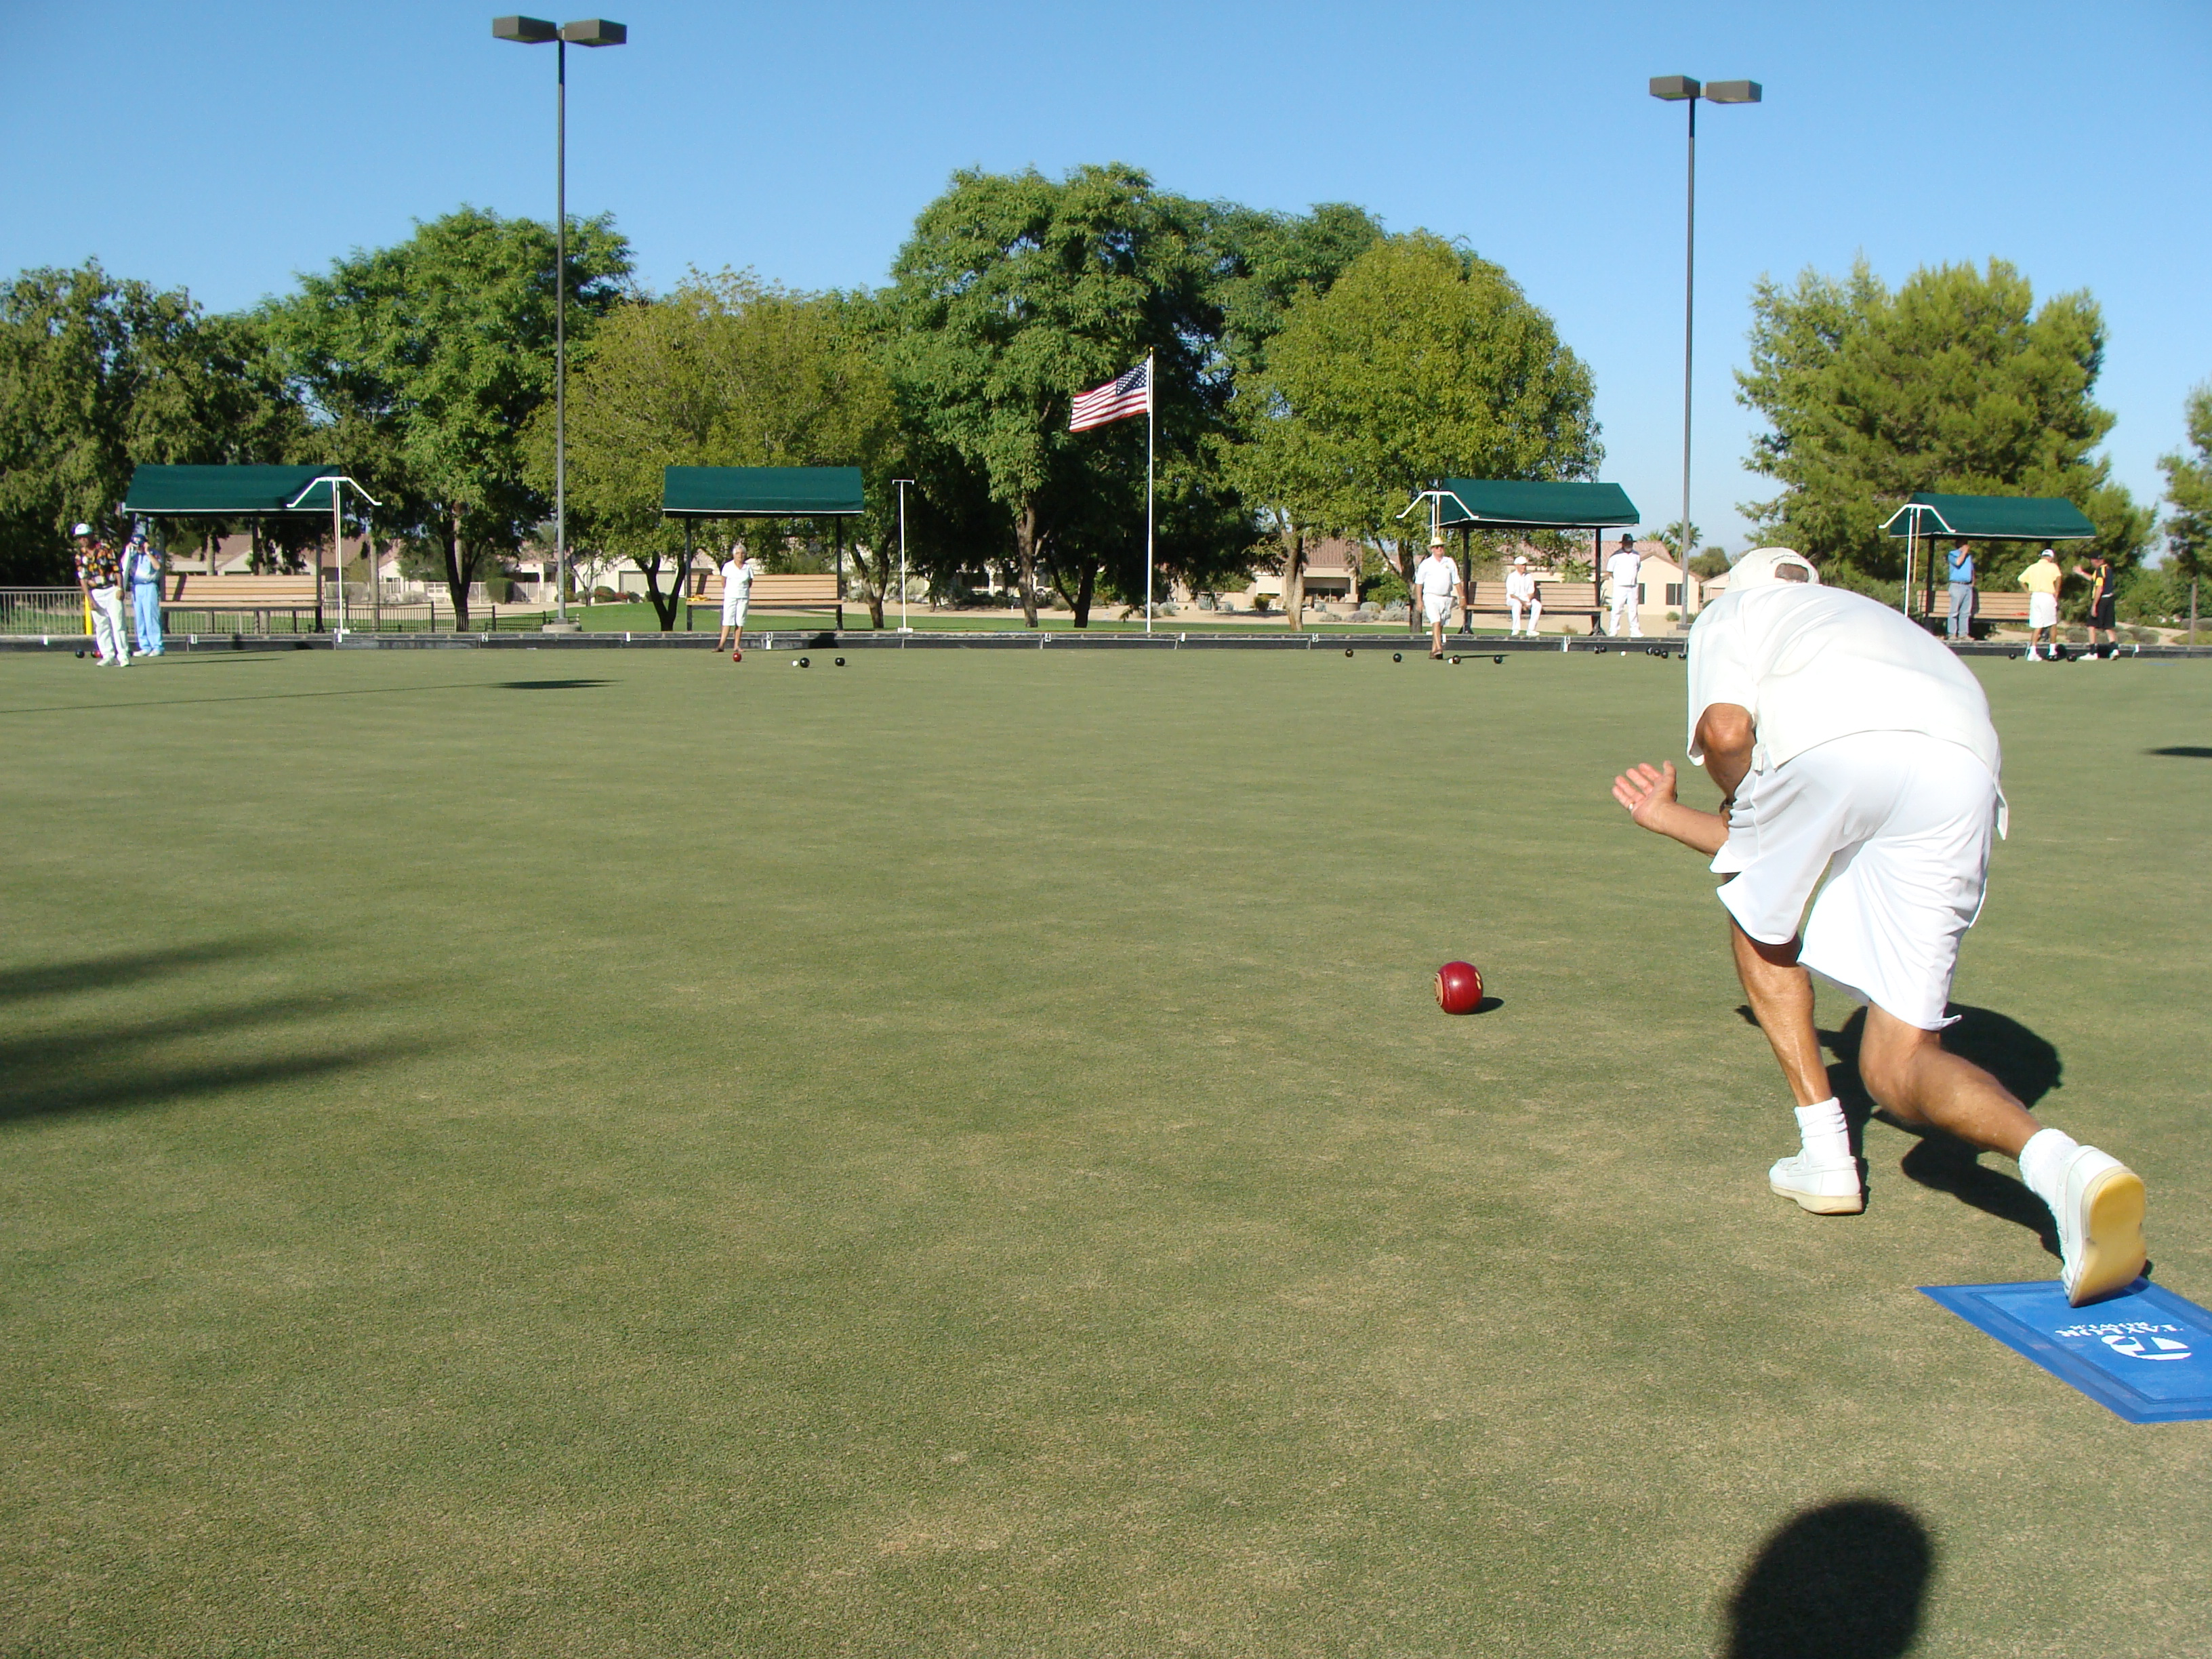 Lawn Bowling Green - After